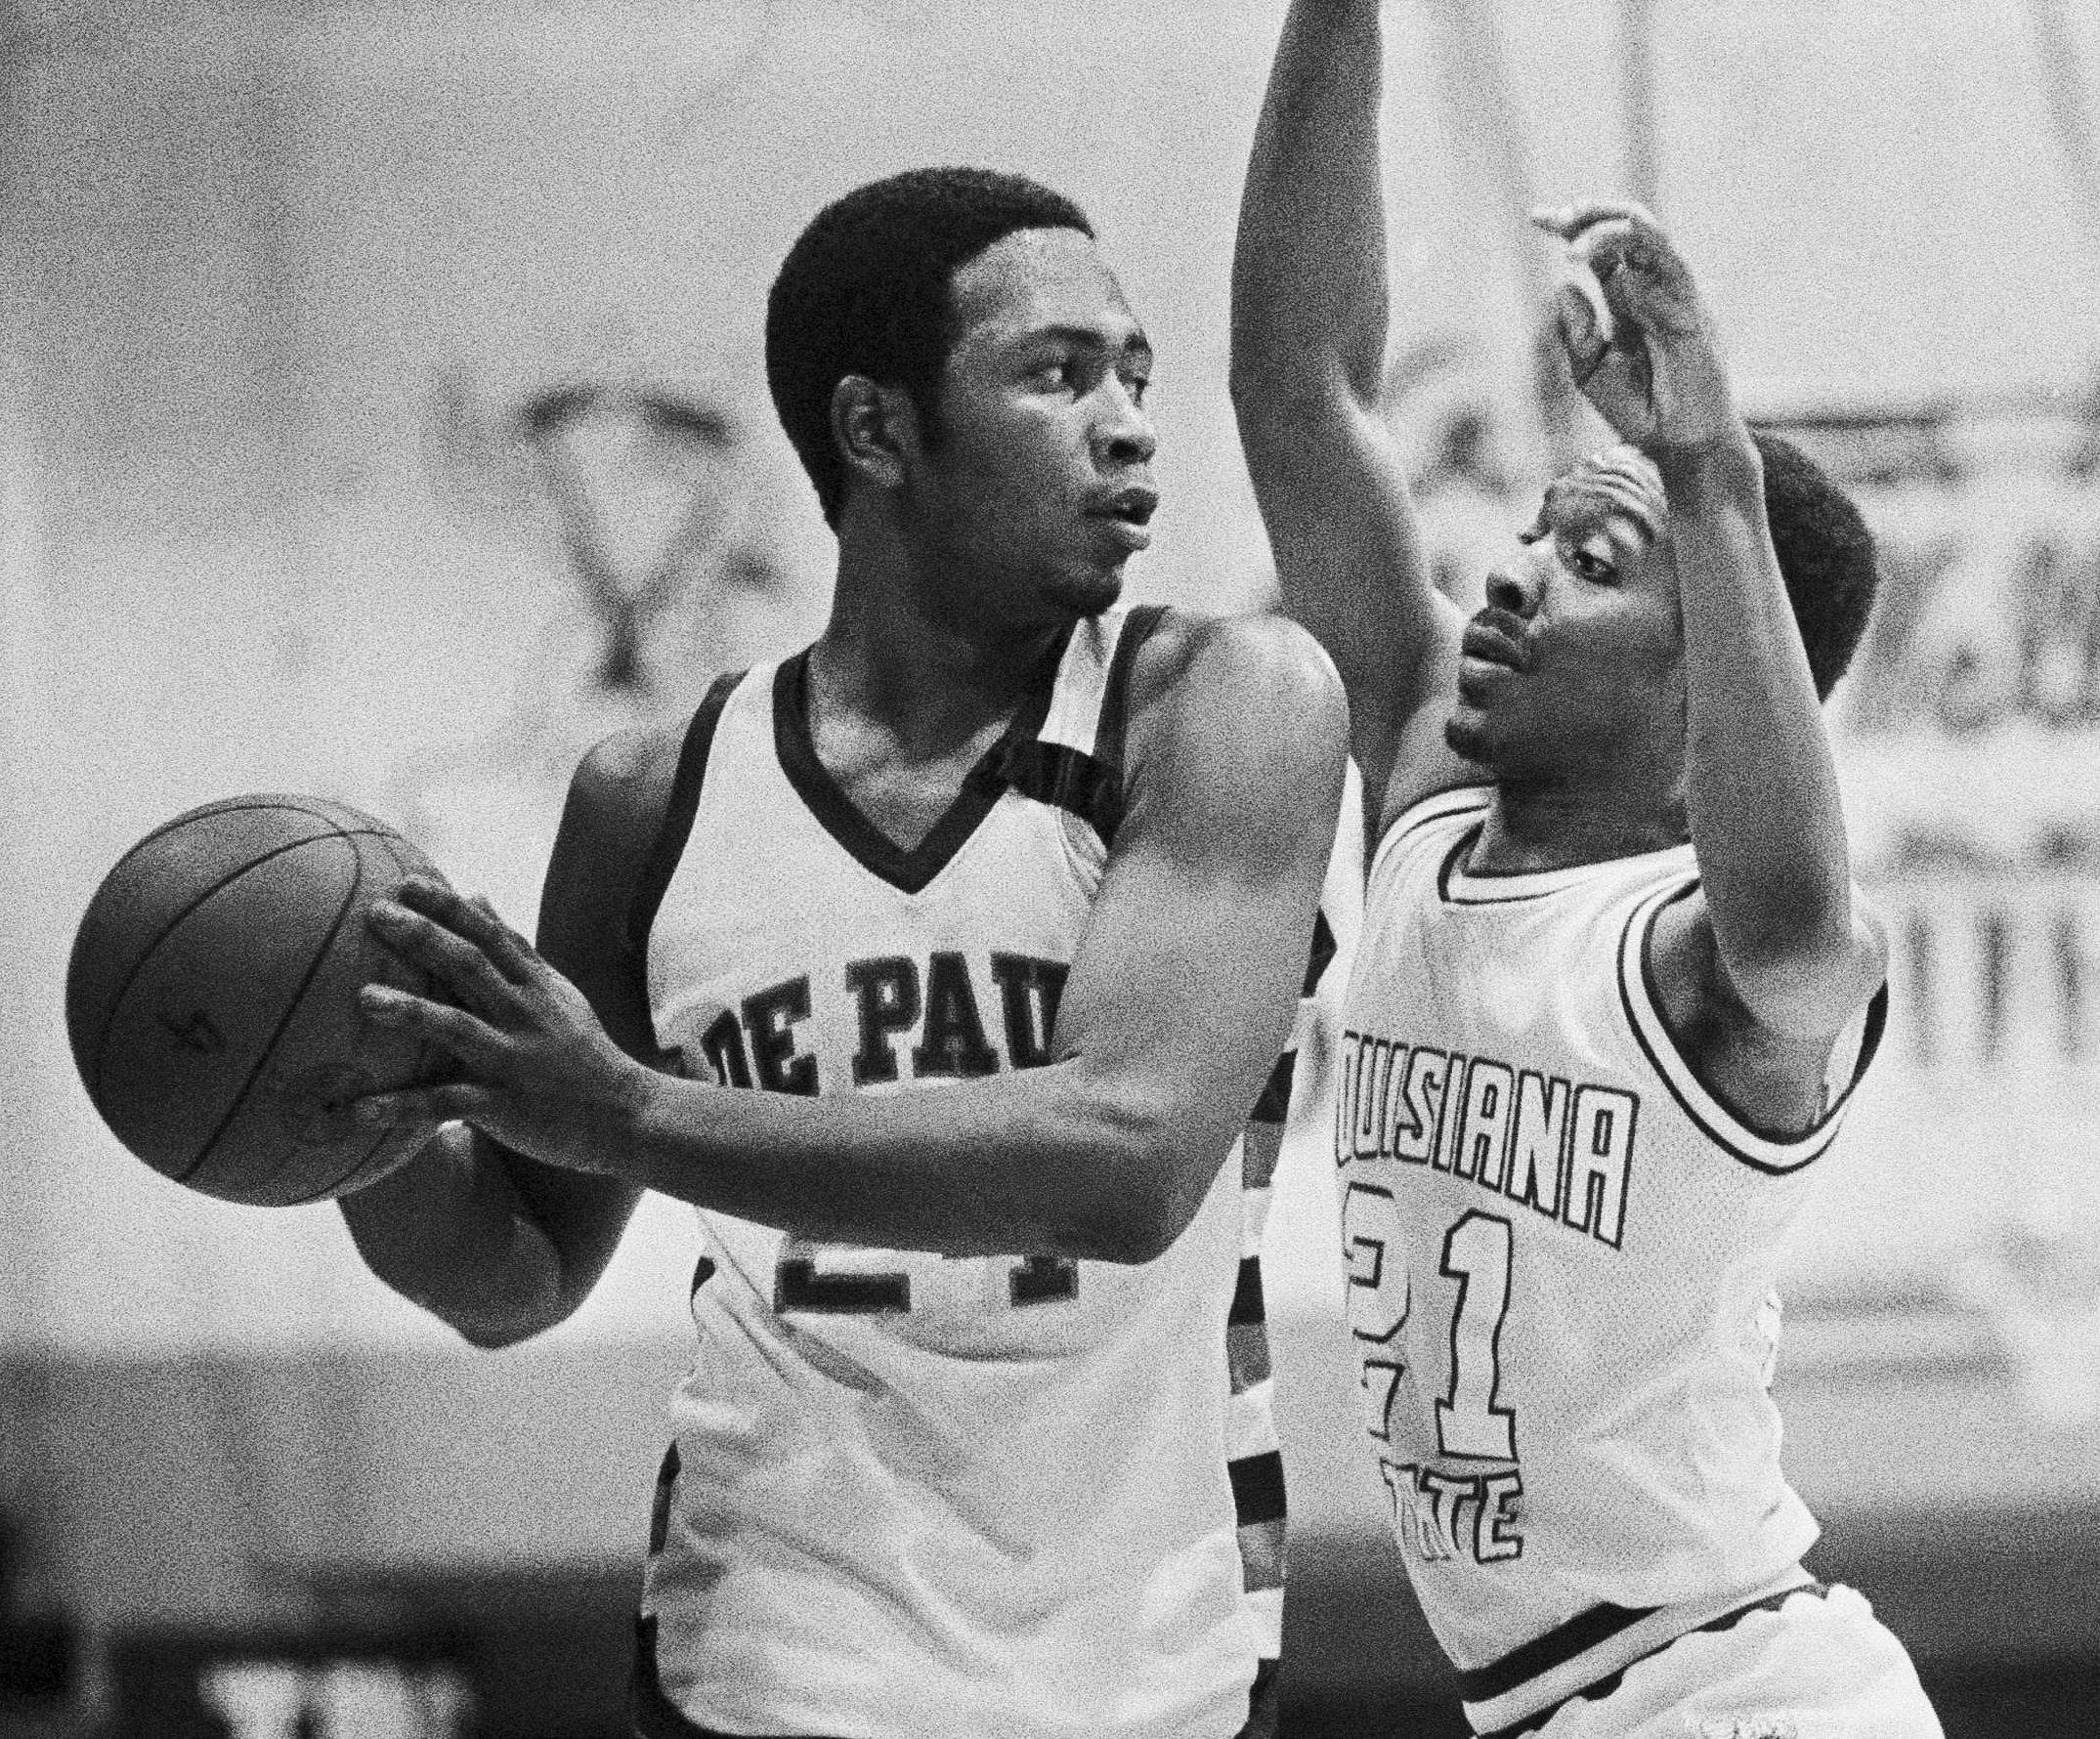 DePaul's Mark Aguirre, left, looks for an open man as he's pressured by LSU's Ethan Martin during a 1980 game.